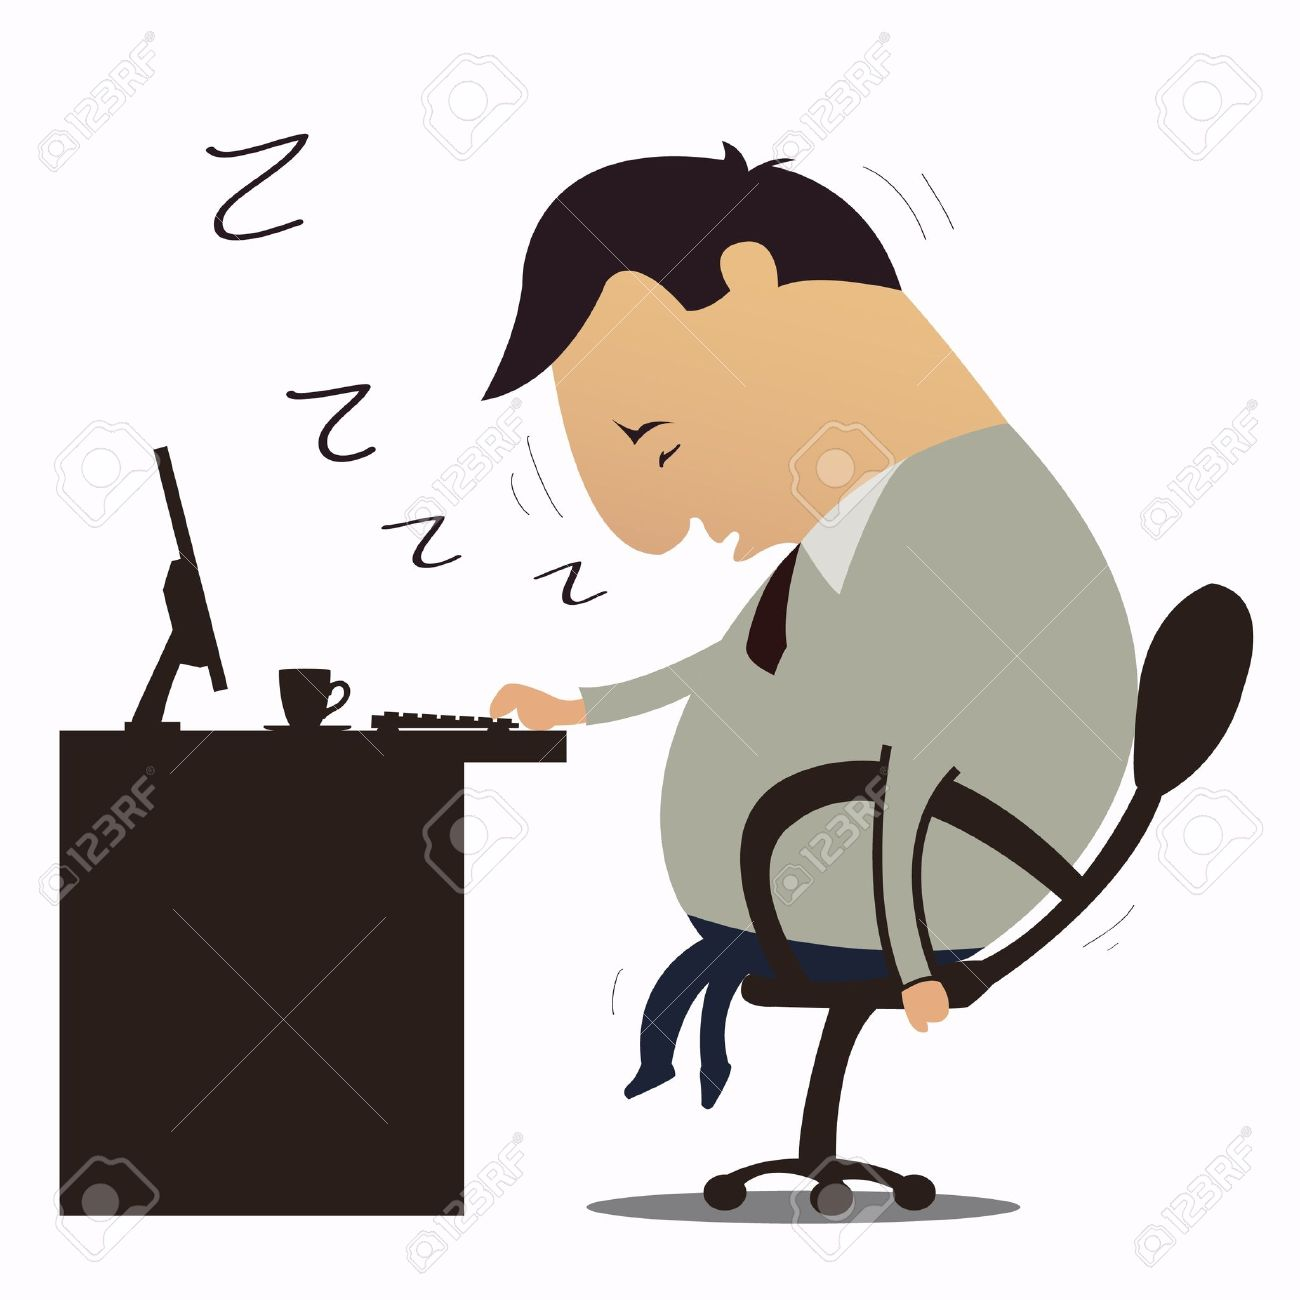 Tired At Work Clipart.